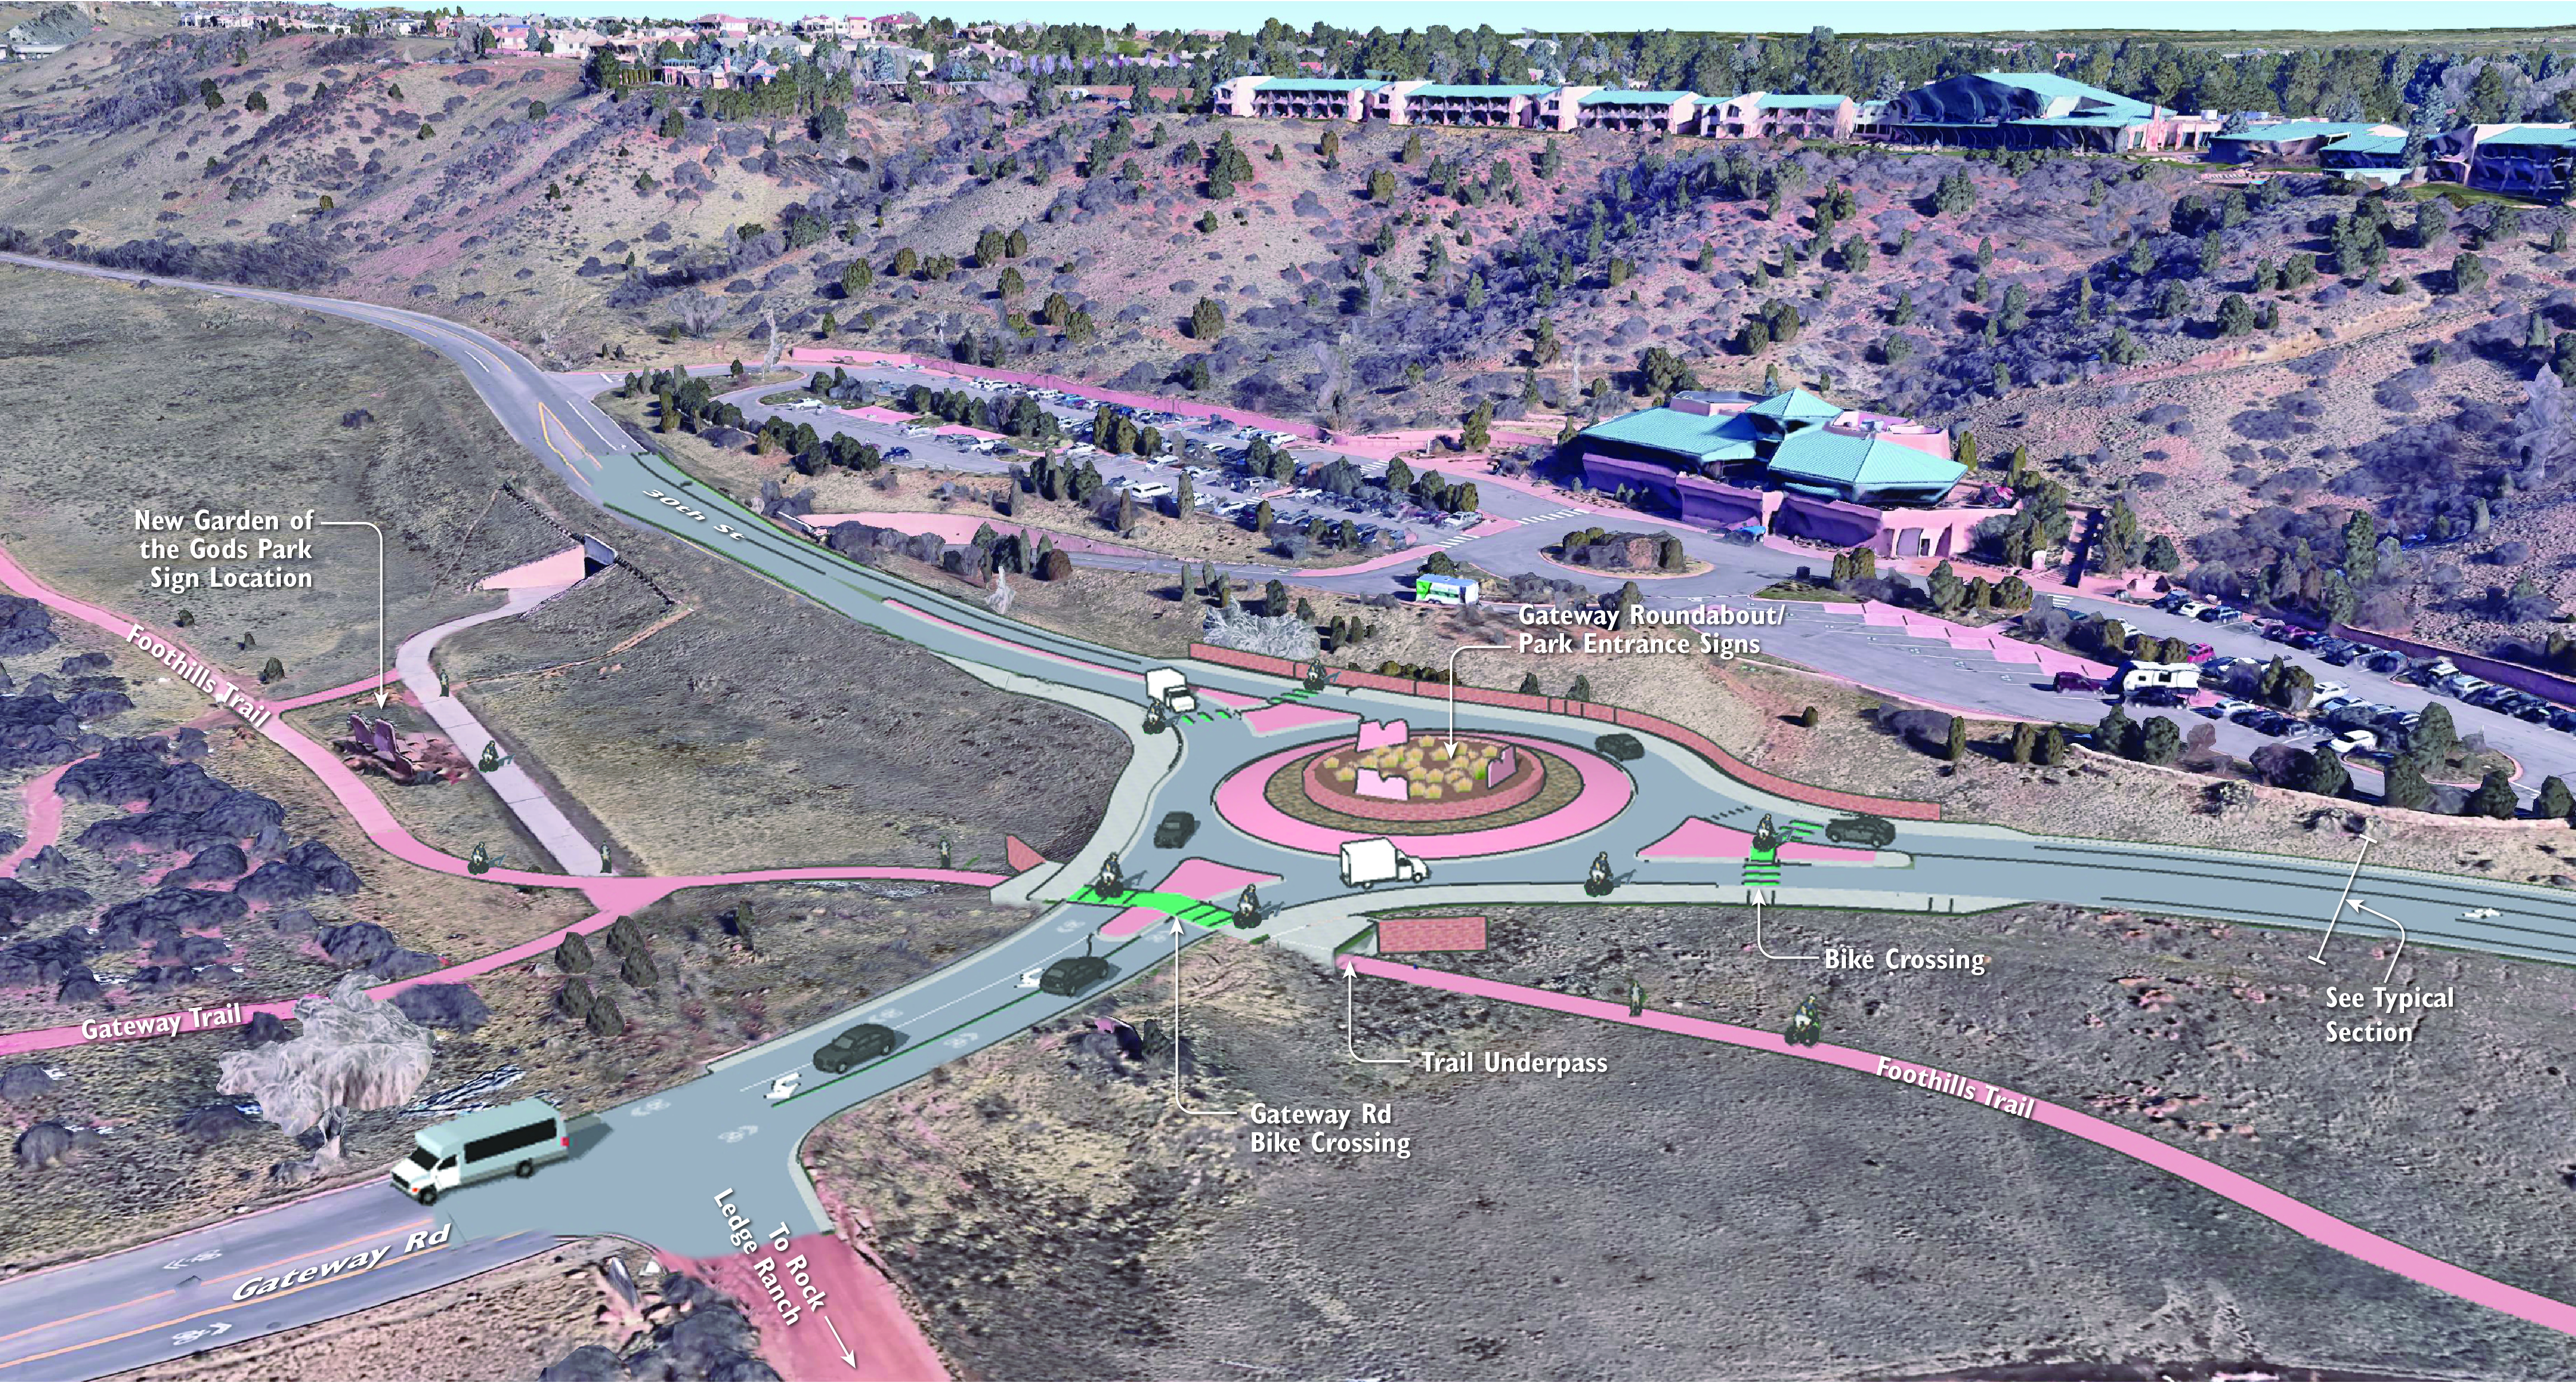 rendering of new roundabout at entrance to garden of the gods